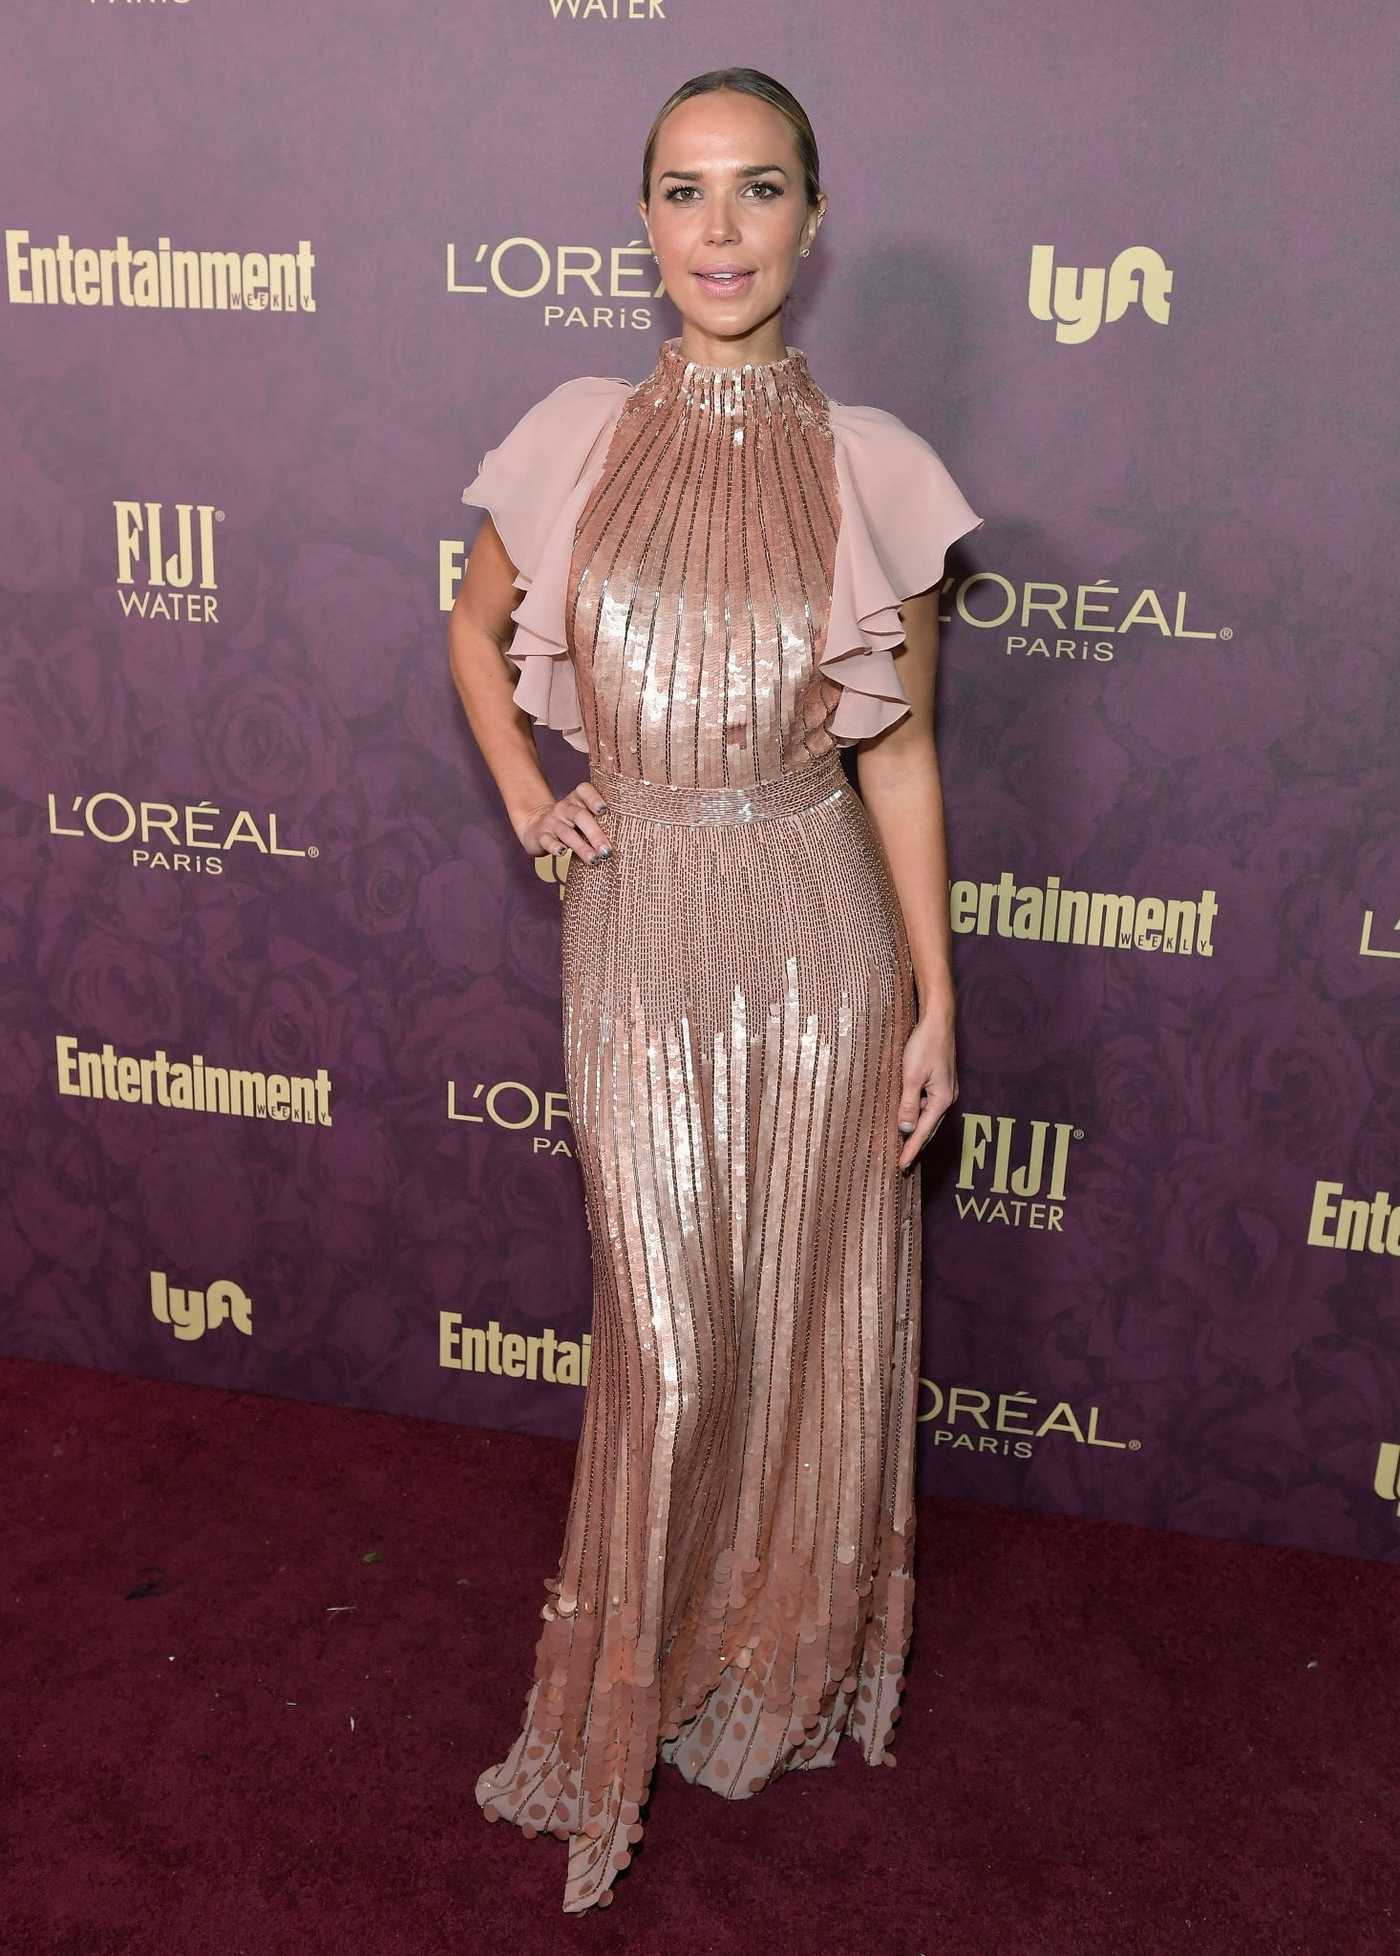 Arielle Kebbel Attends Entertainment Weekly and L'Oreal Paris Pre-Emmy Party in Los Angeles 09/15/2018